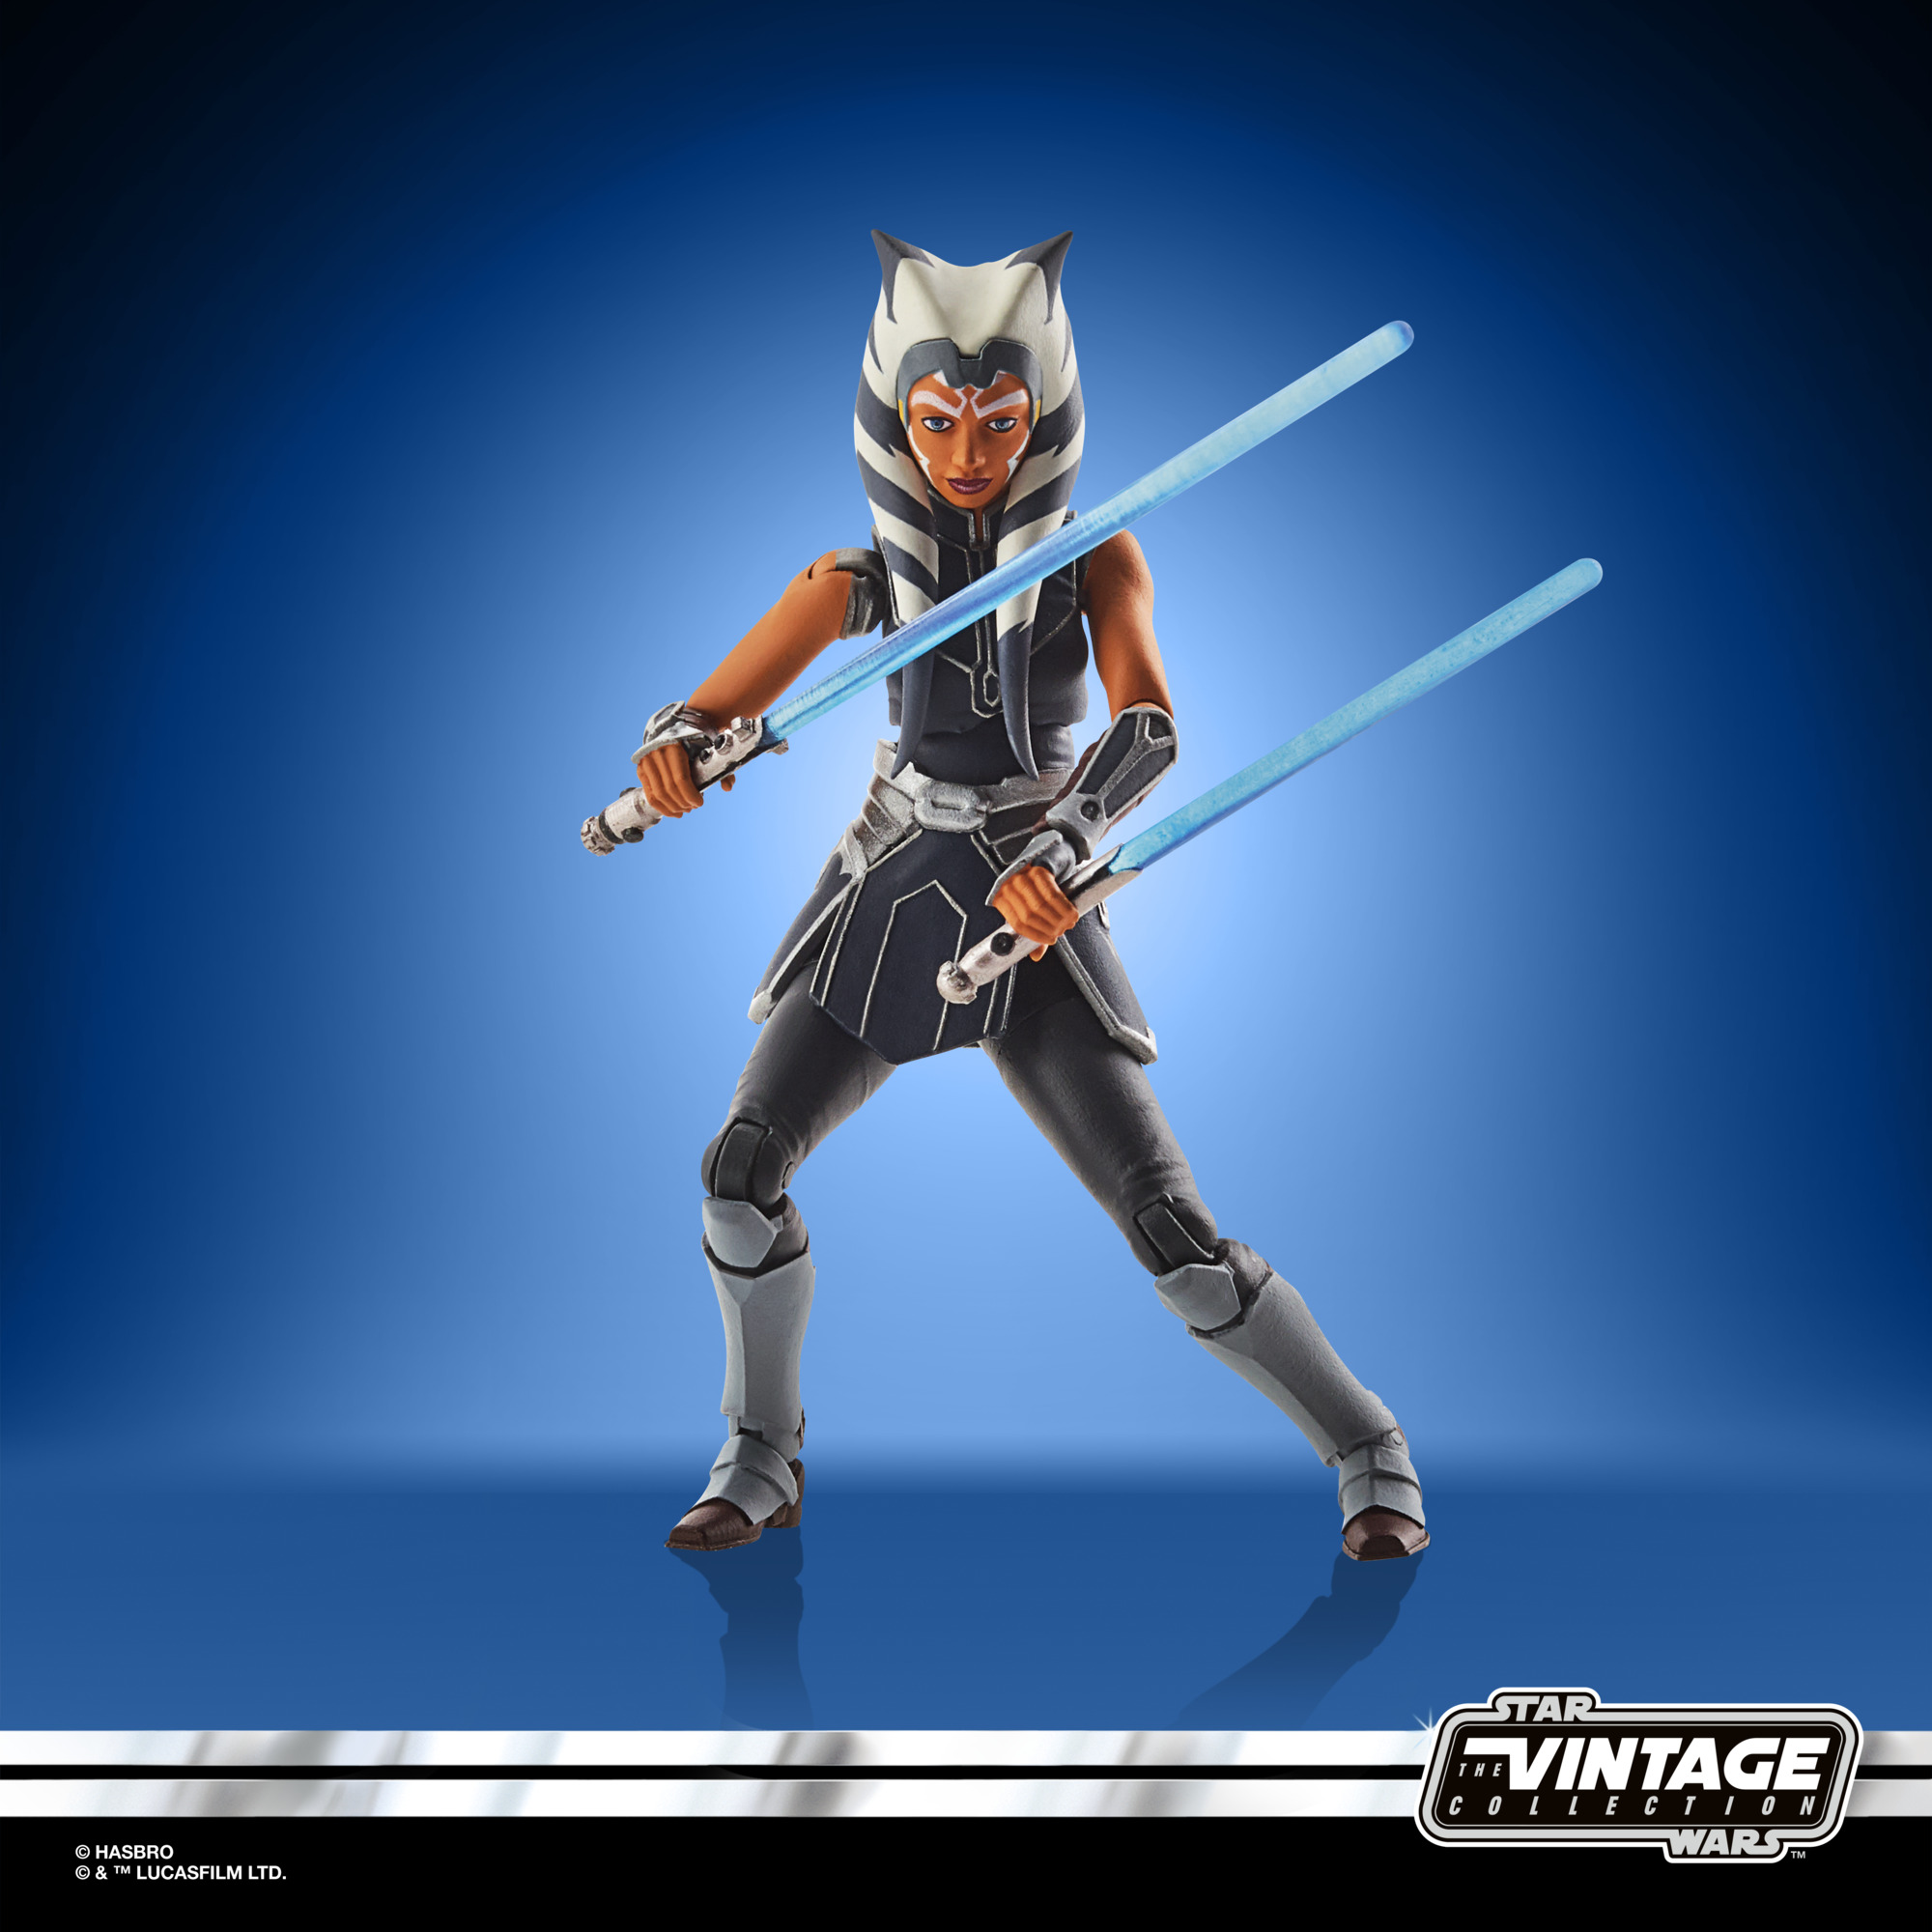 STAR WARS THE VINTAGE COLLECTION 3.75-INCH AHSOKA TANO (MANDALORE) Figure – oop (2)